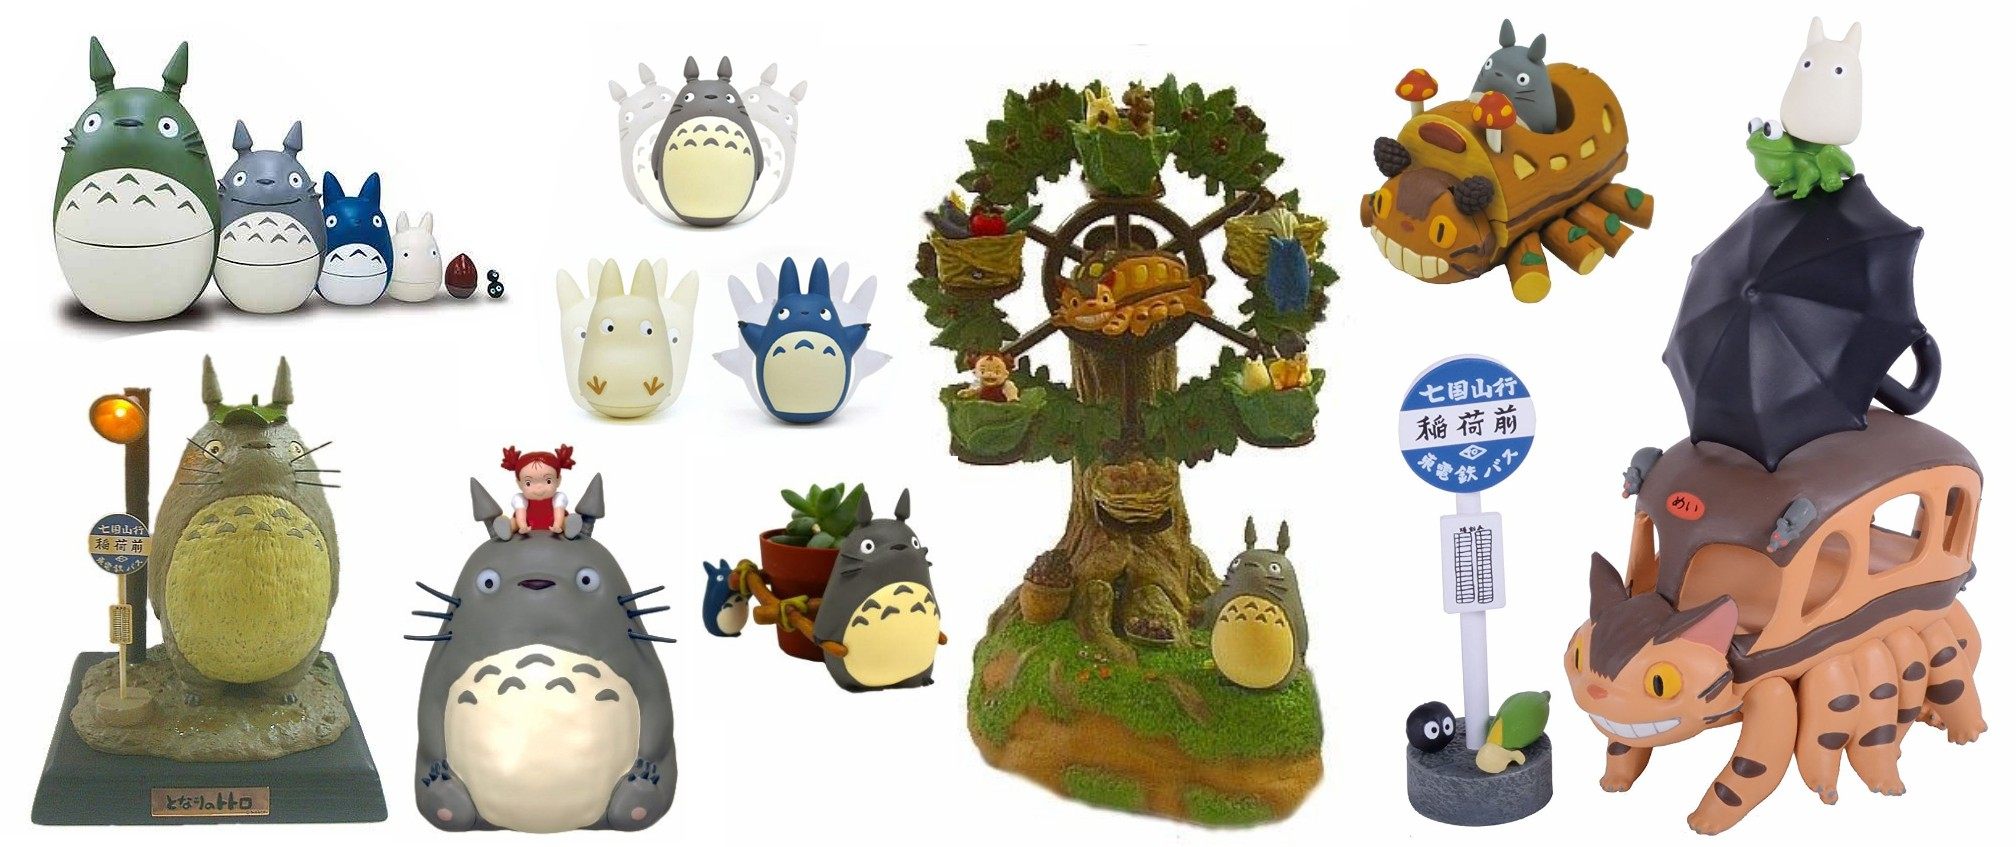 My Neighbor Totoro Figurines